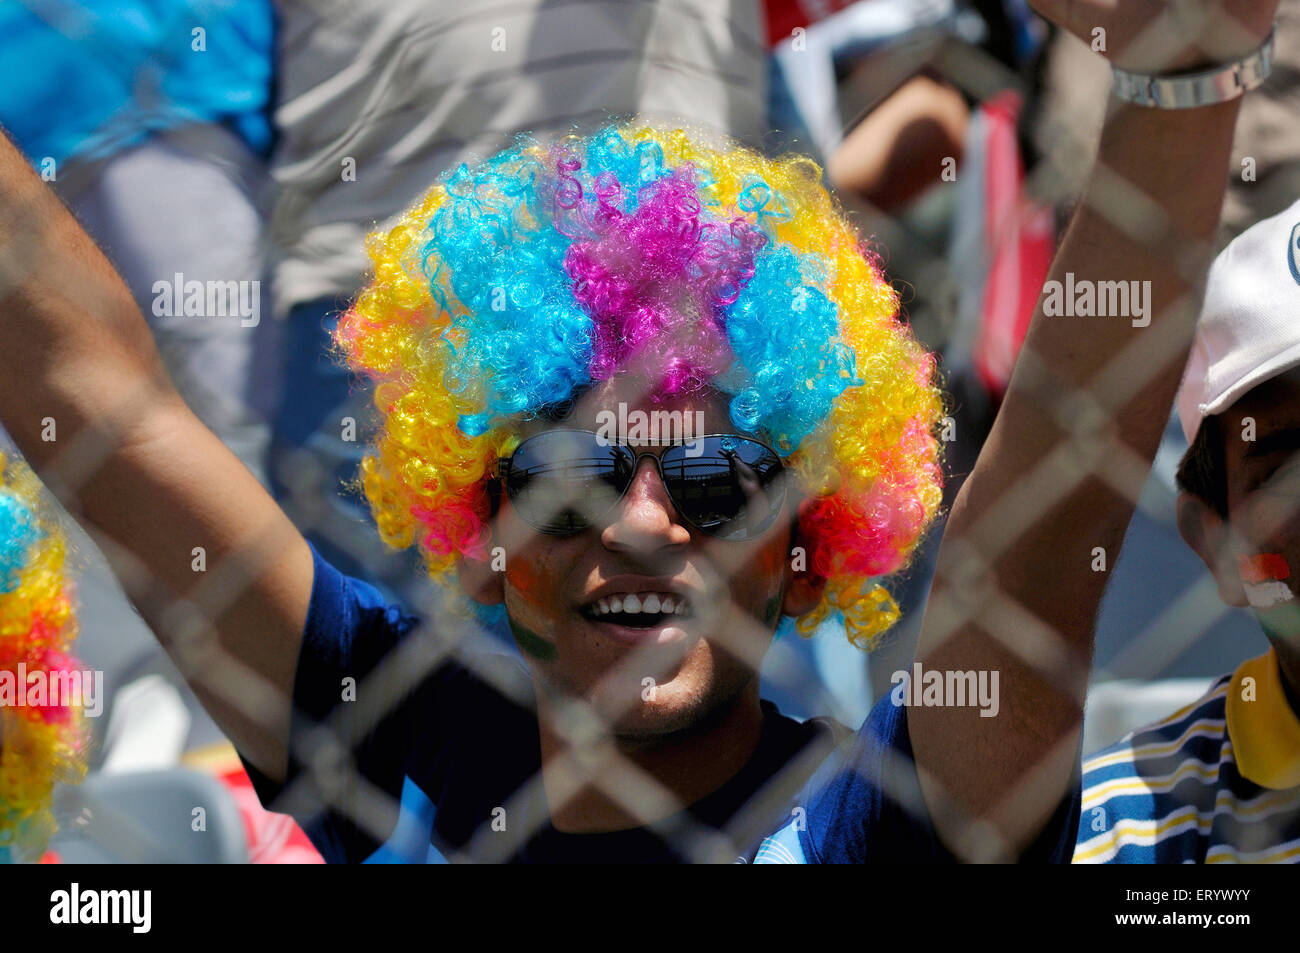 Indian fans ICC Cricket World Cup finals against Sri Lanka played at the Wankhede stadium Mumbai - Stock Image